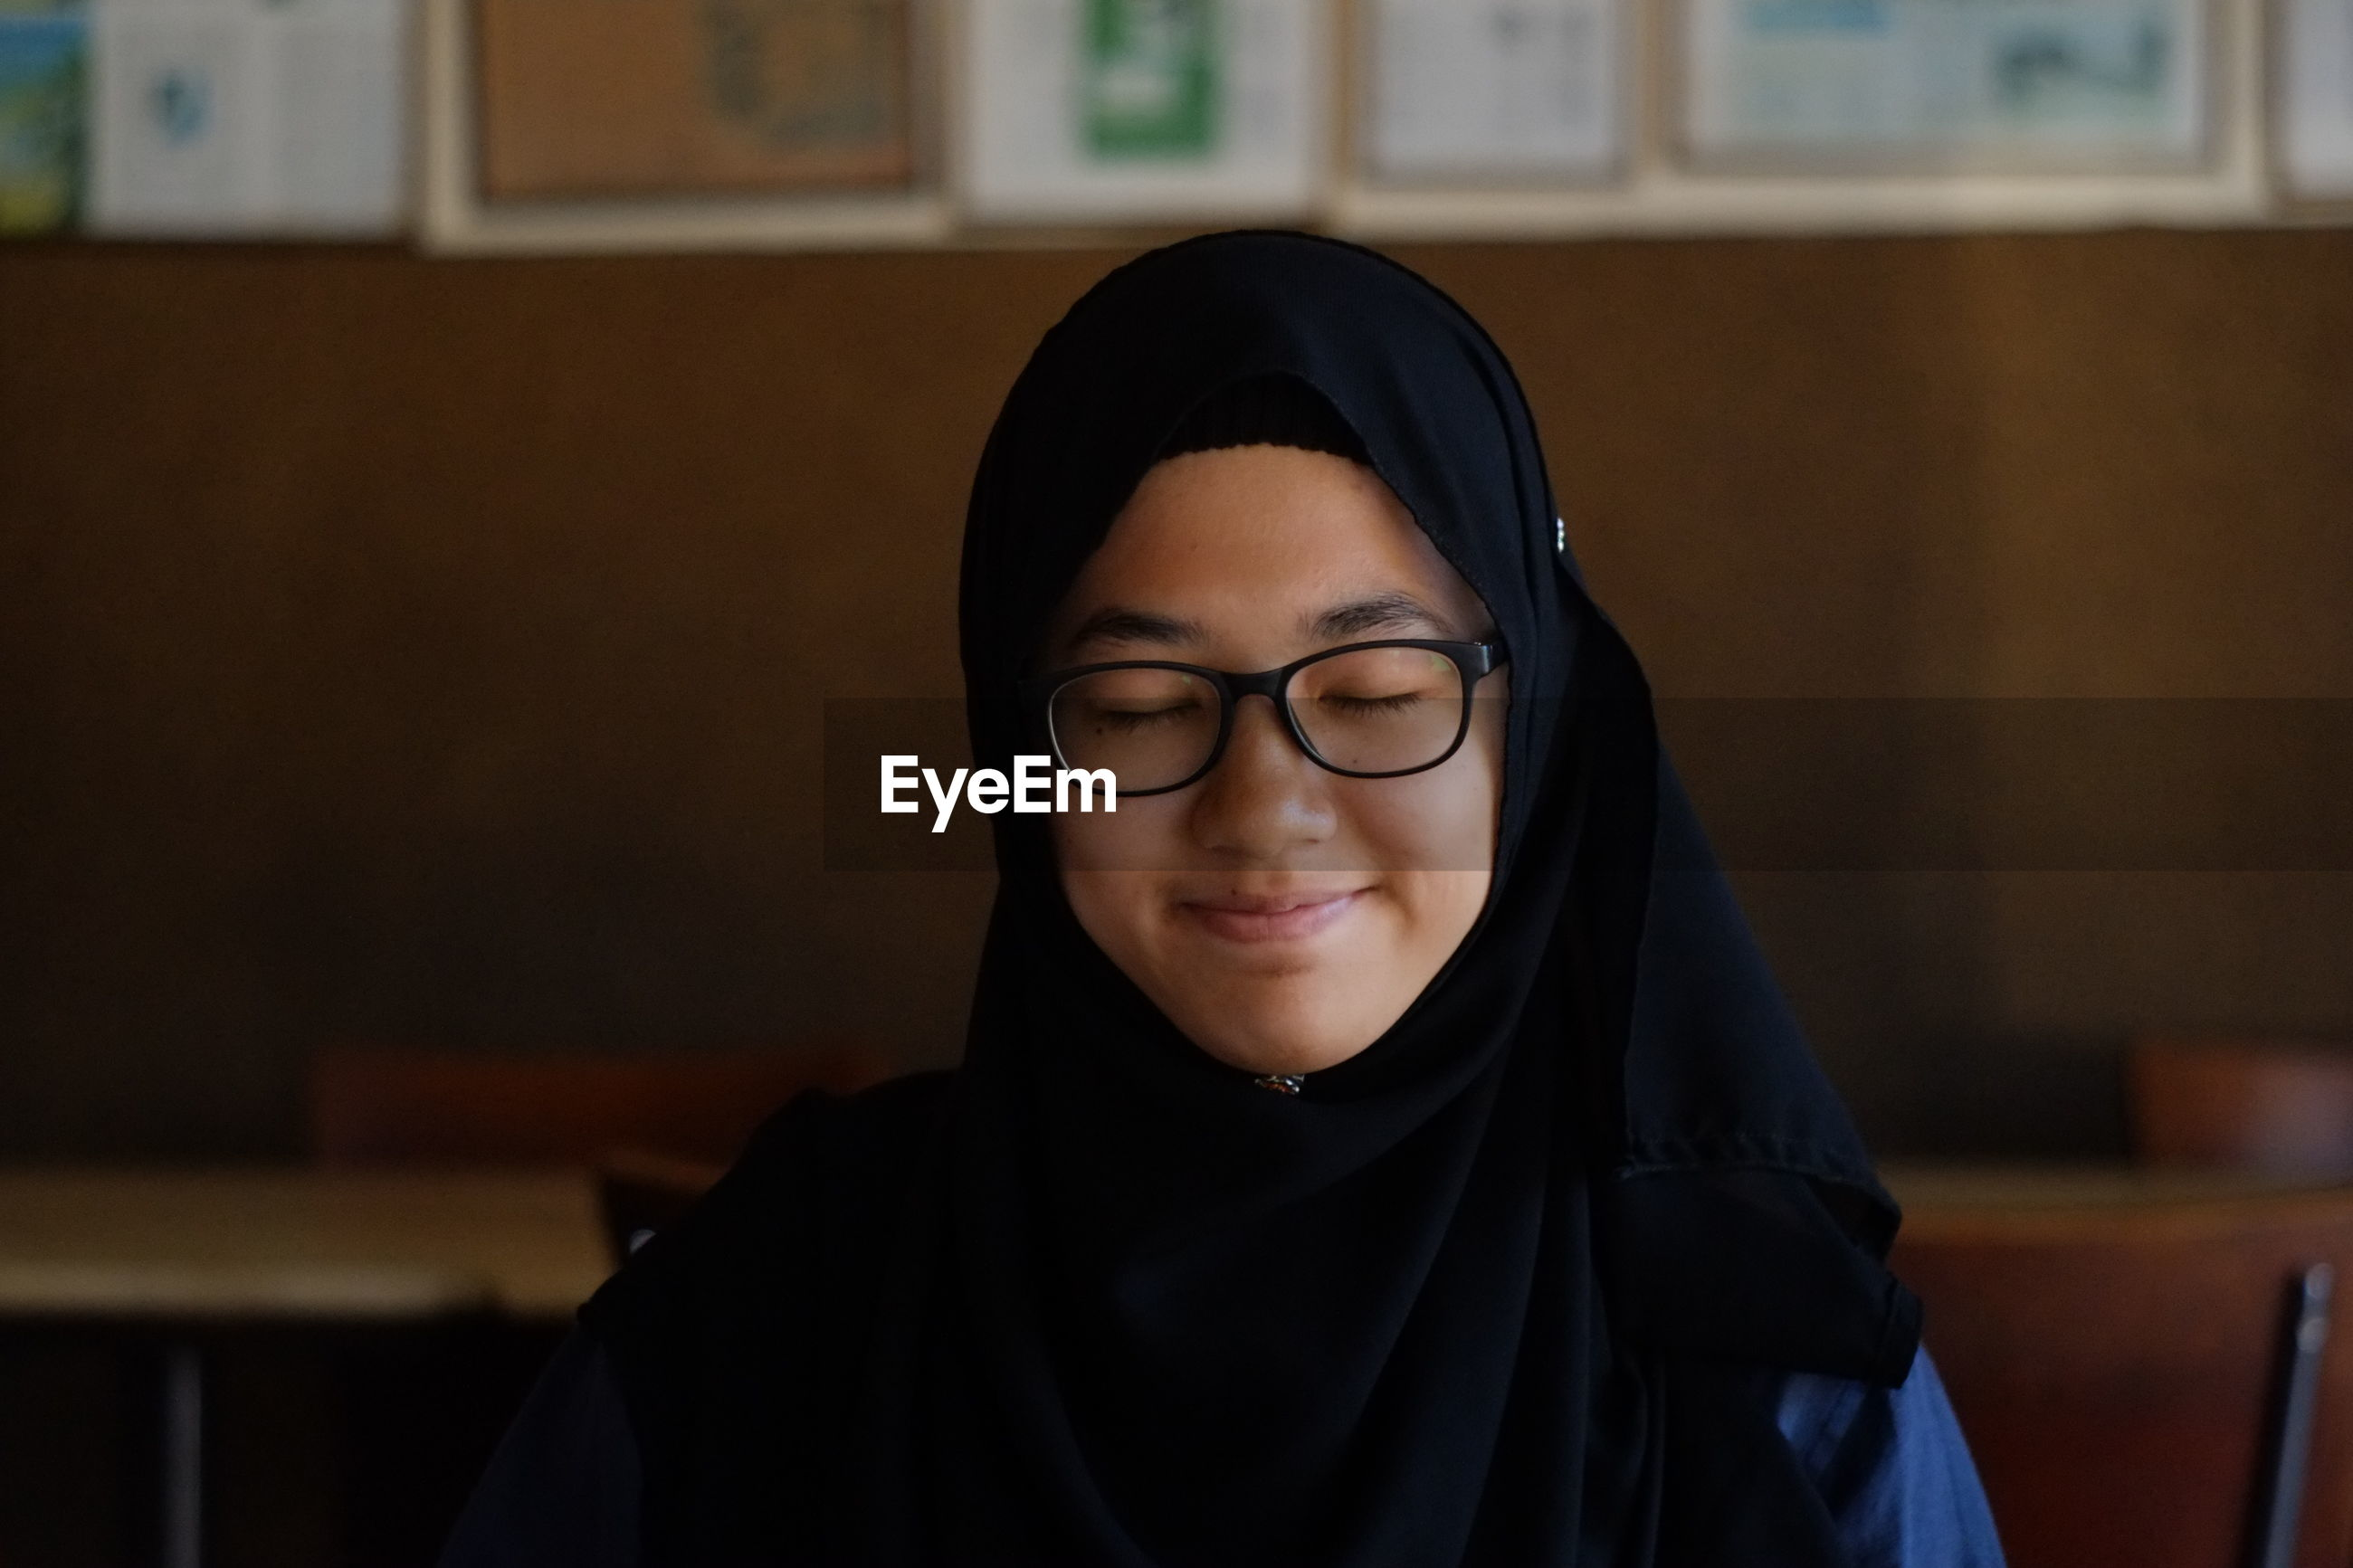 Close-up of happy girl wearing hijab and eyeglasses with closed eyes at restaurant